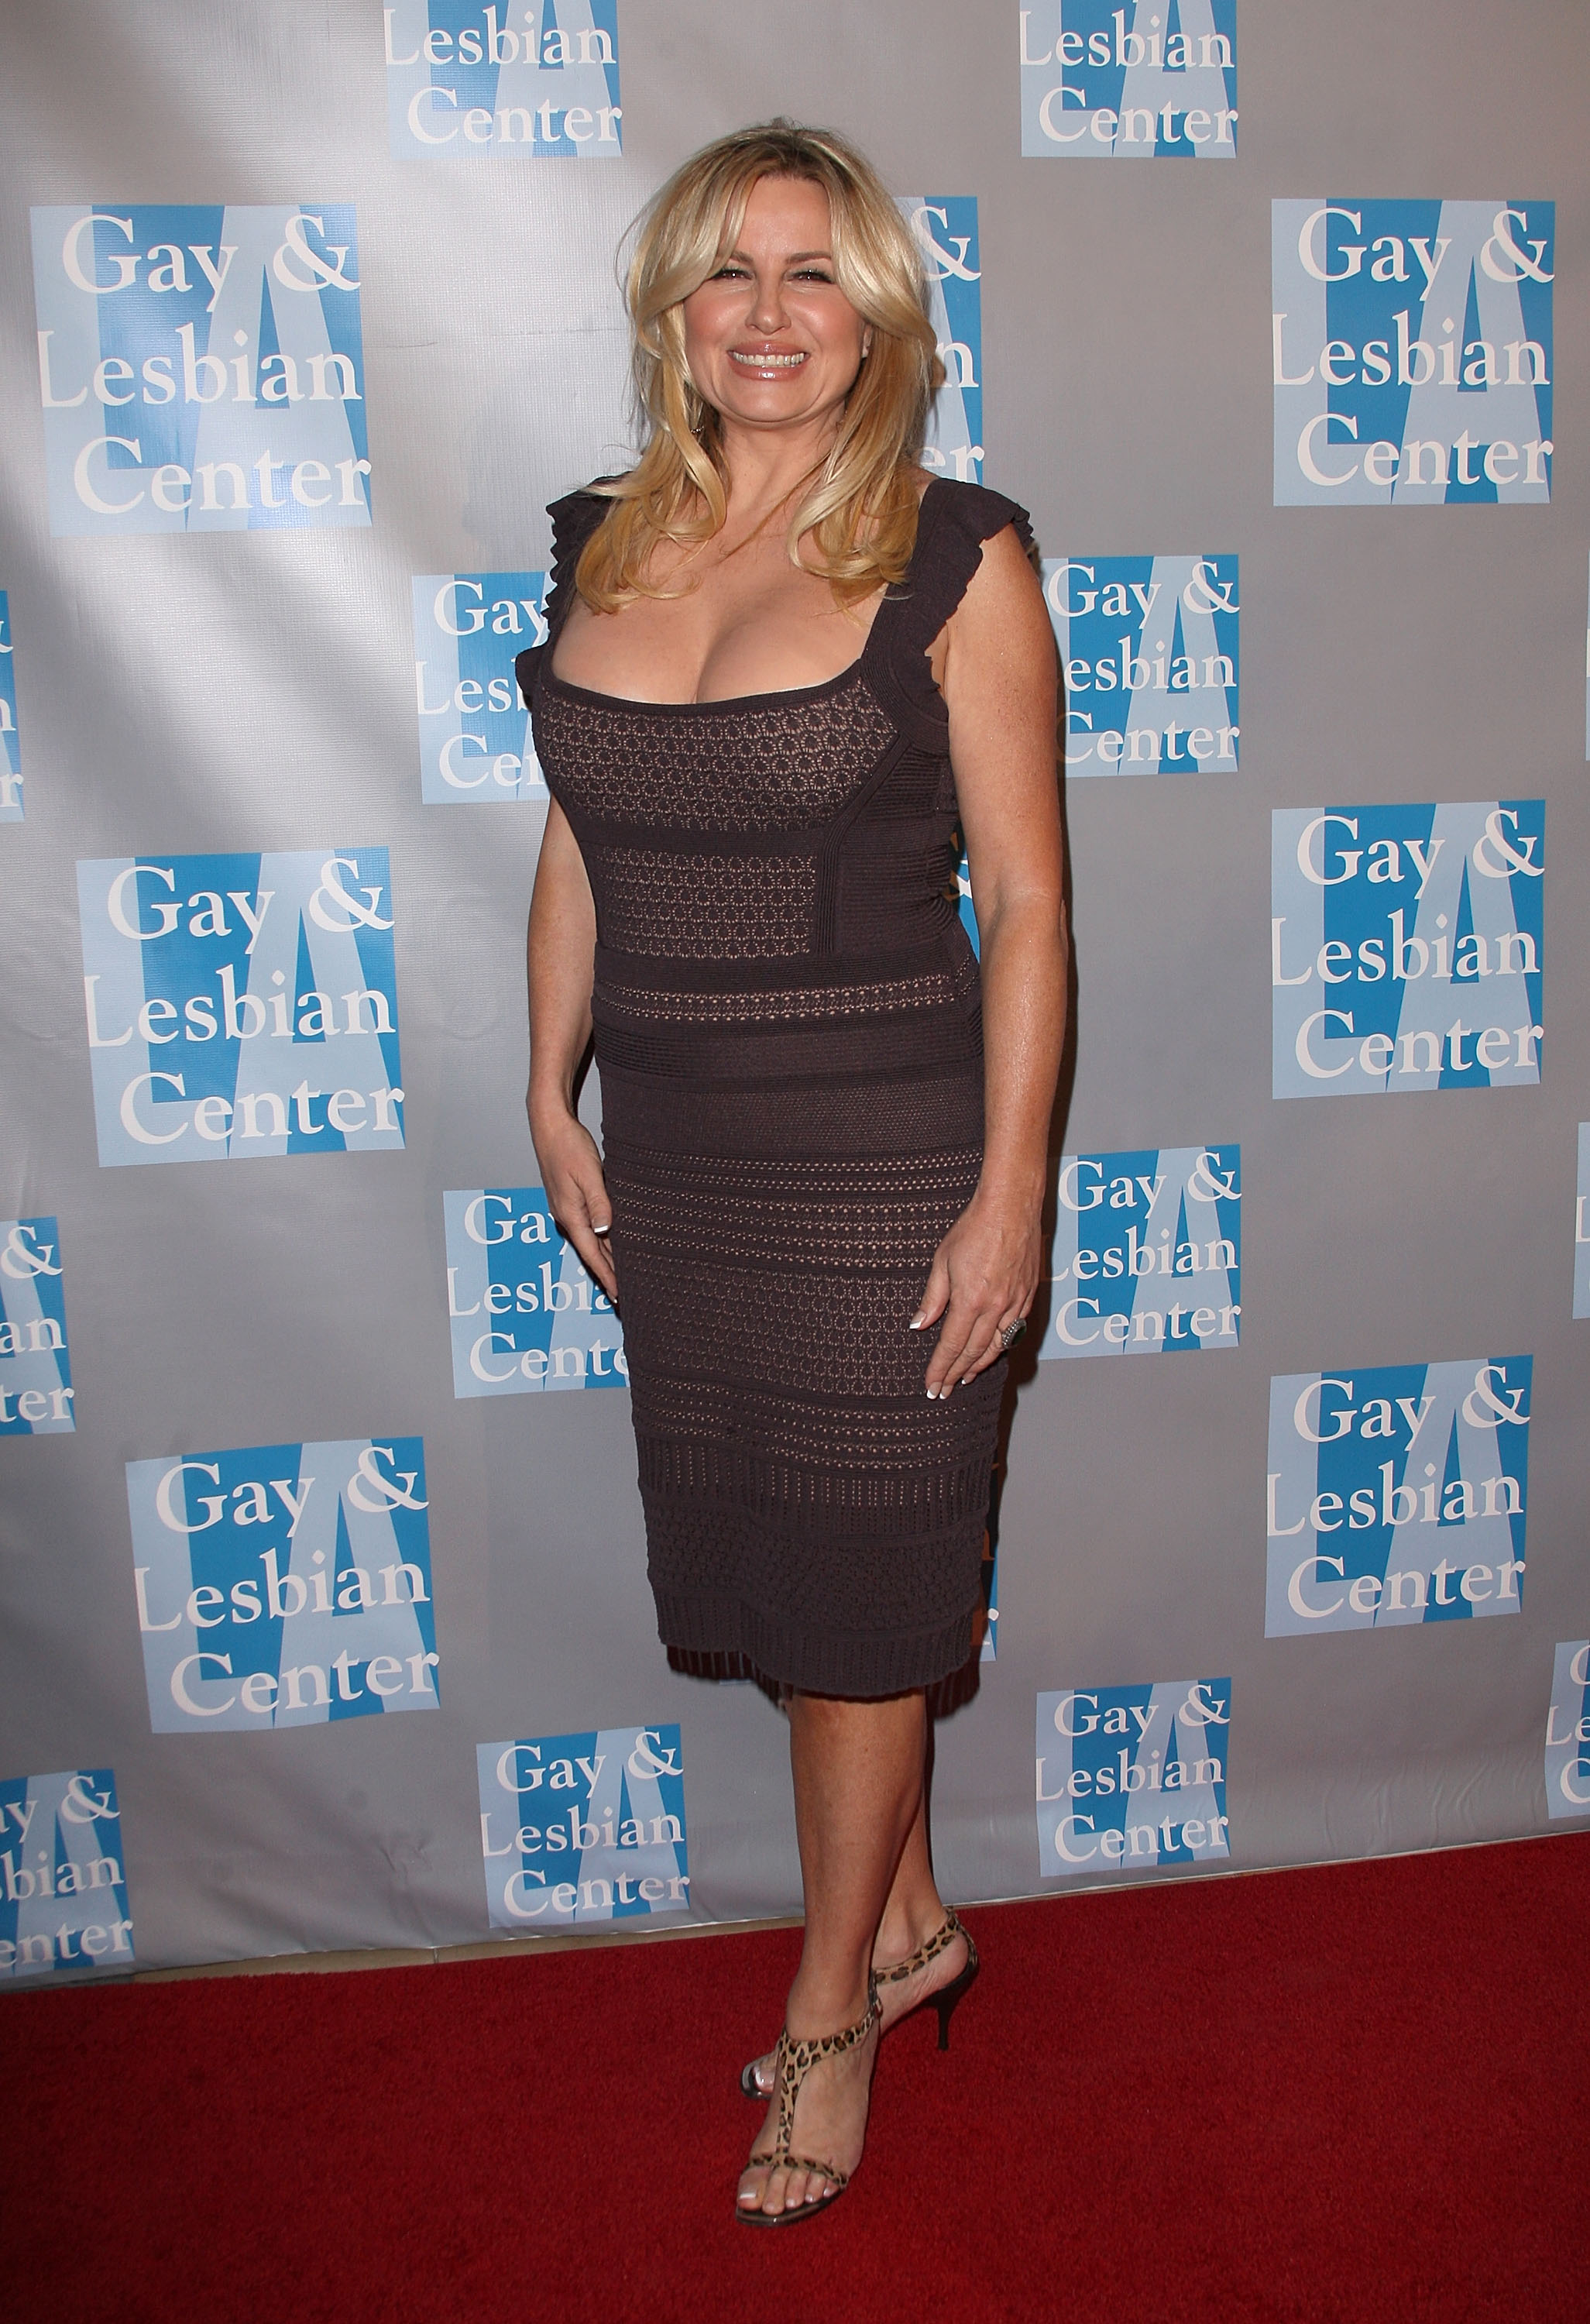 Jennifer Coolidge Xxx Good is jennifer coolidge gay - other